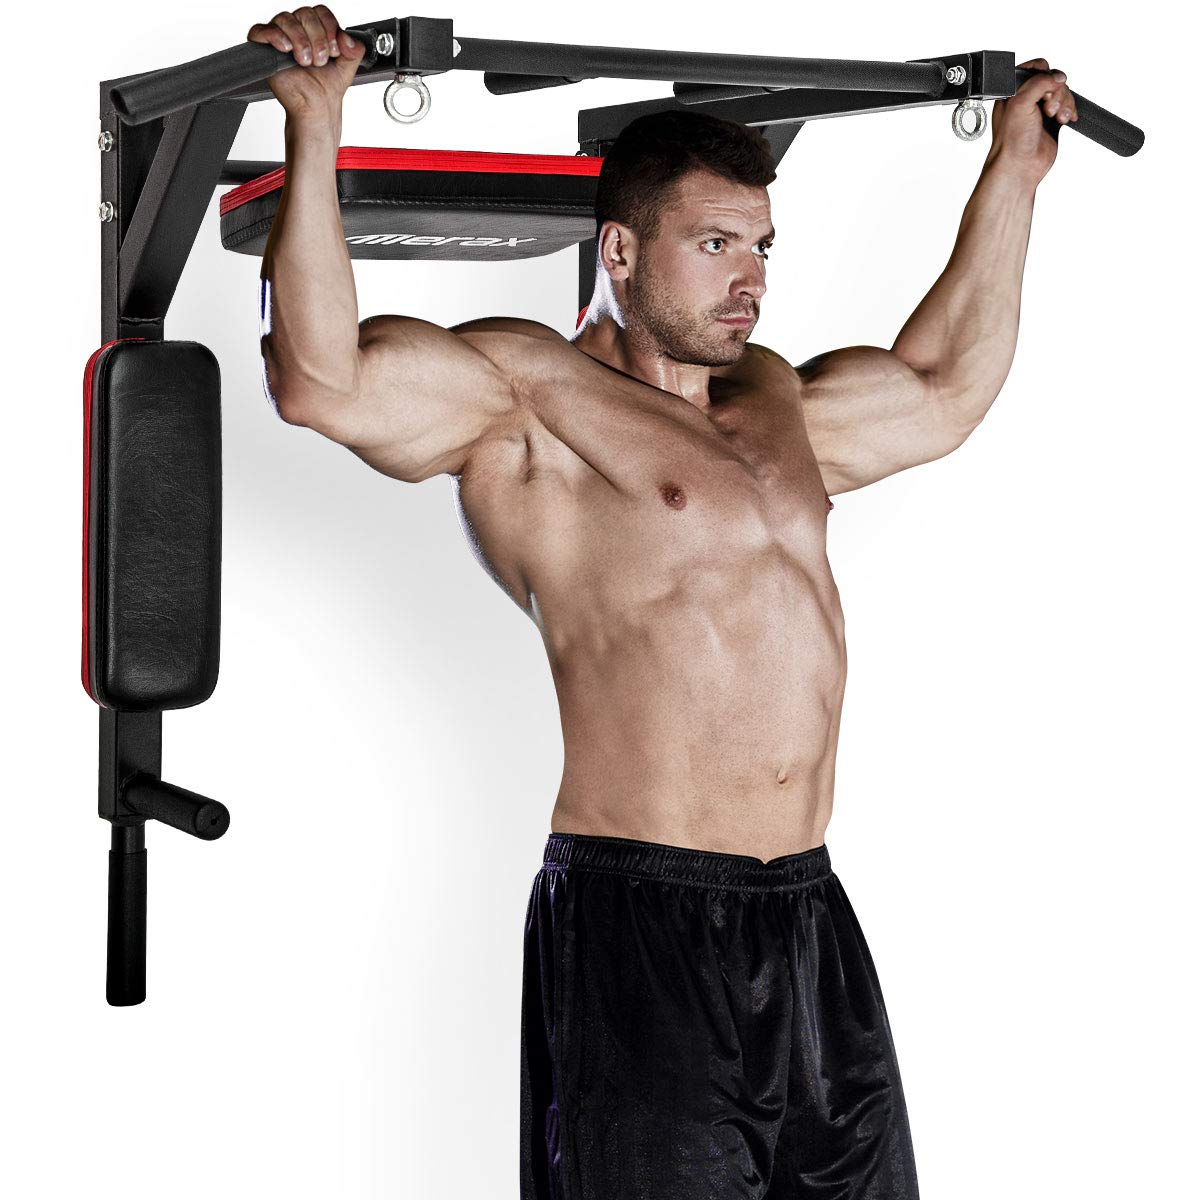 The 5 Best Wall Mounted Pull Up Bars For Your Home Gym